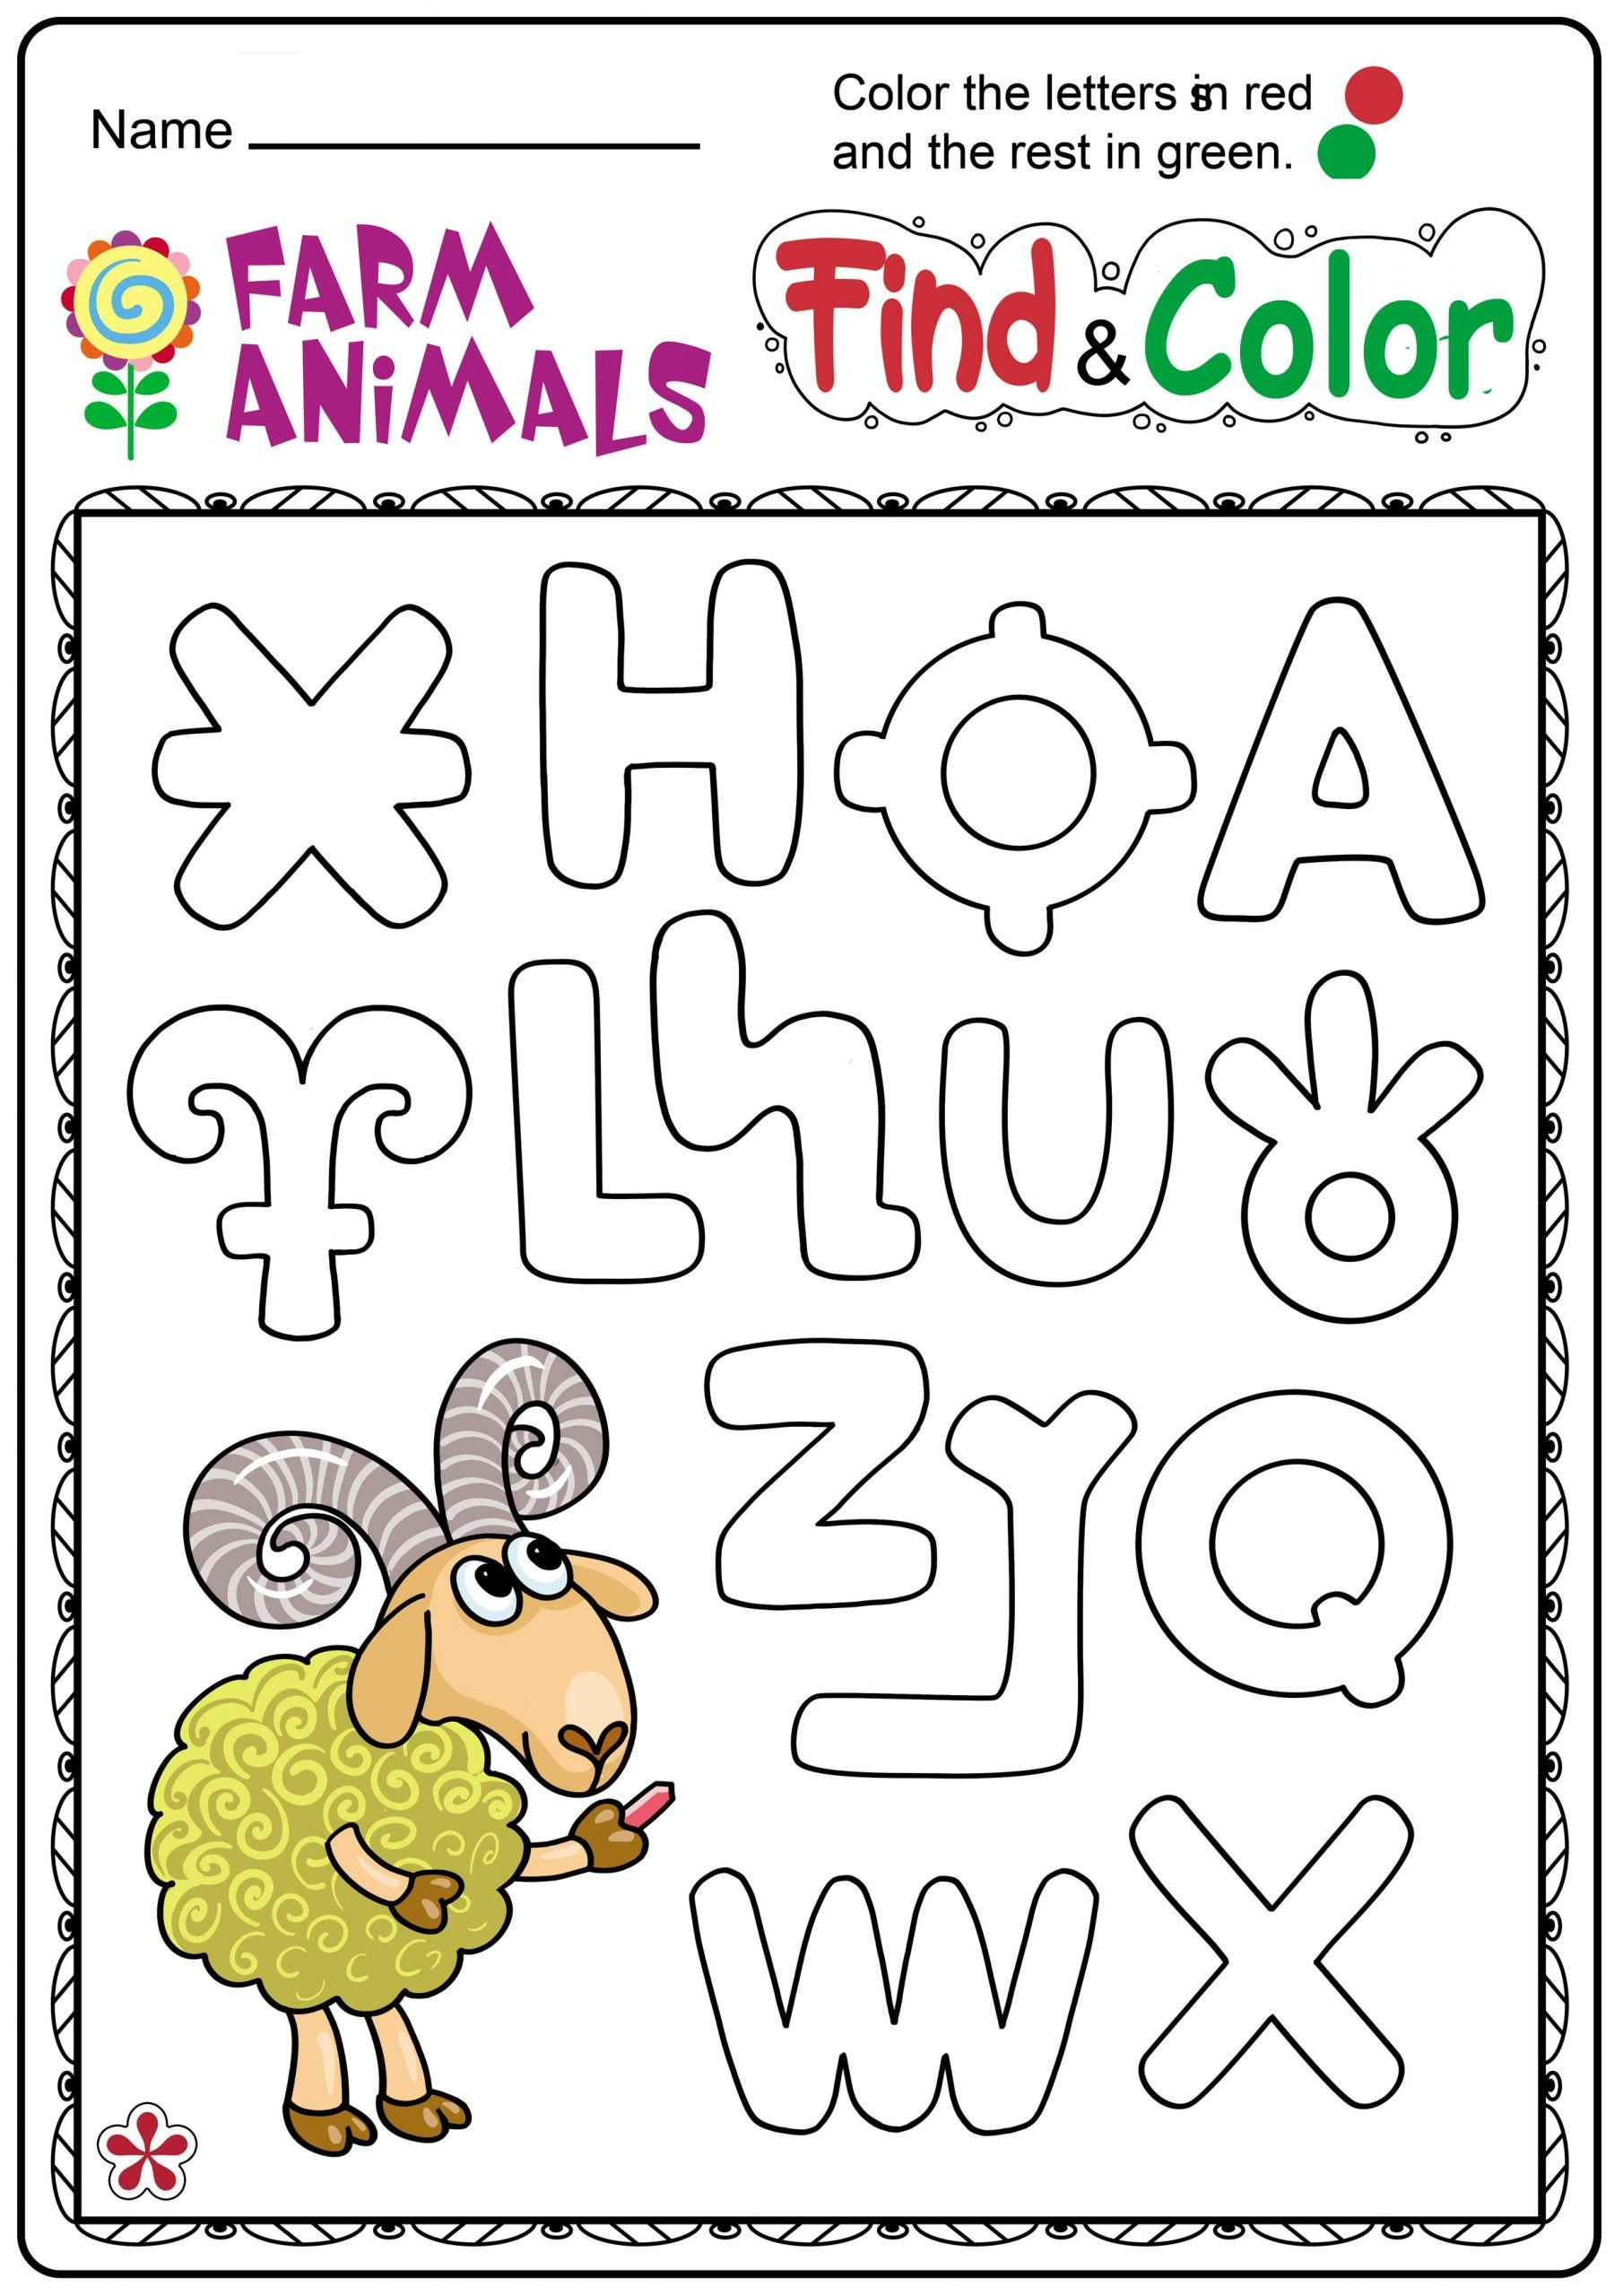 Farm Animals Worksheets for Kindergarten 6 Farm Animals Project Kindergarten Apocalomegaproductions